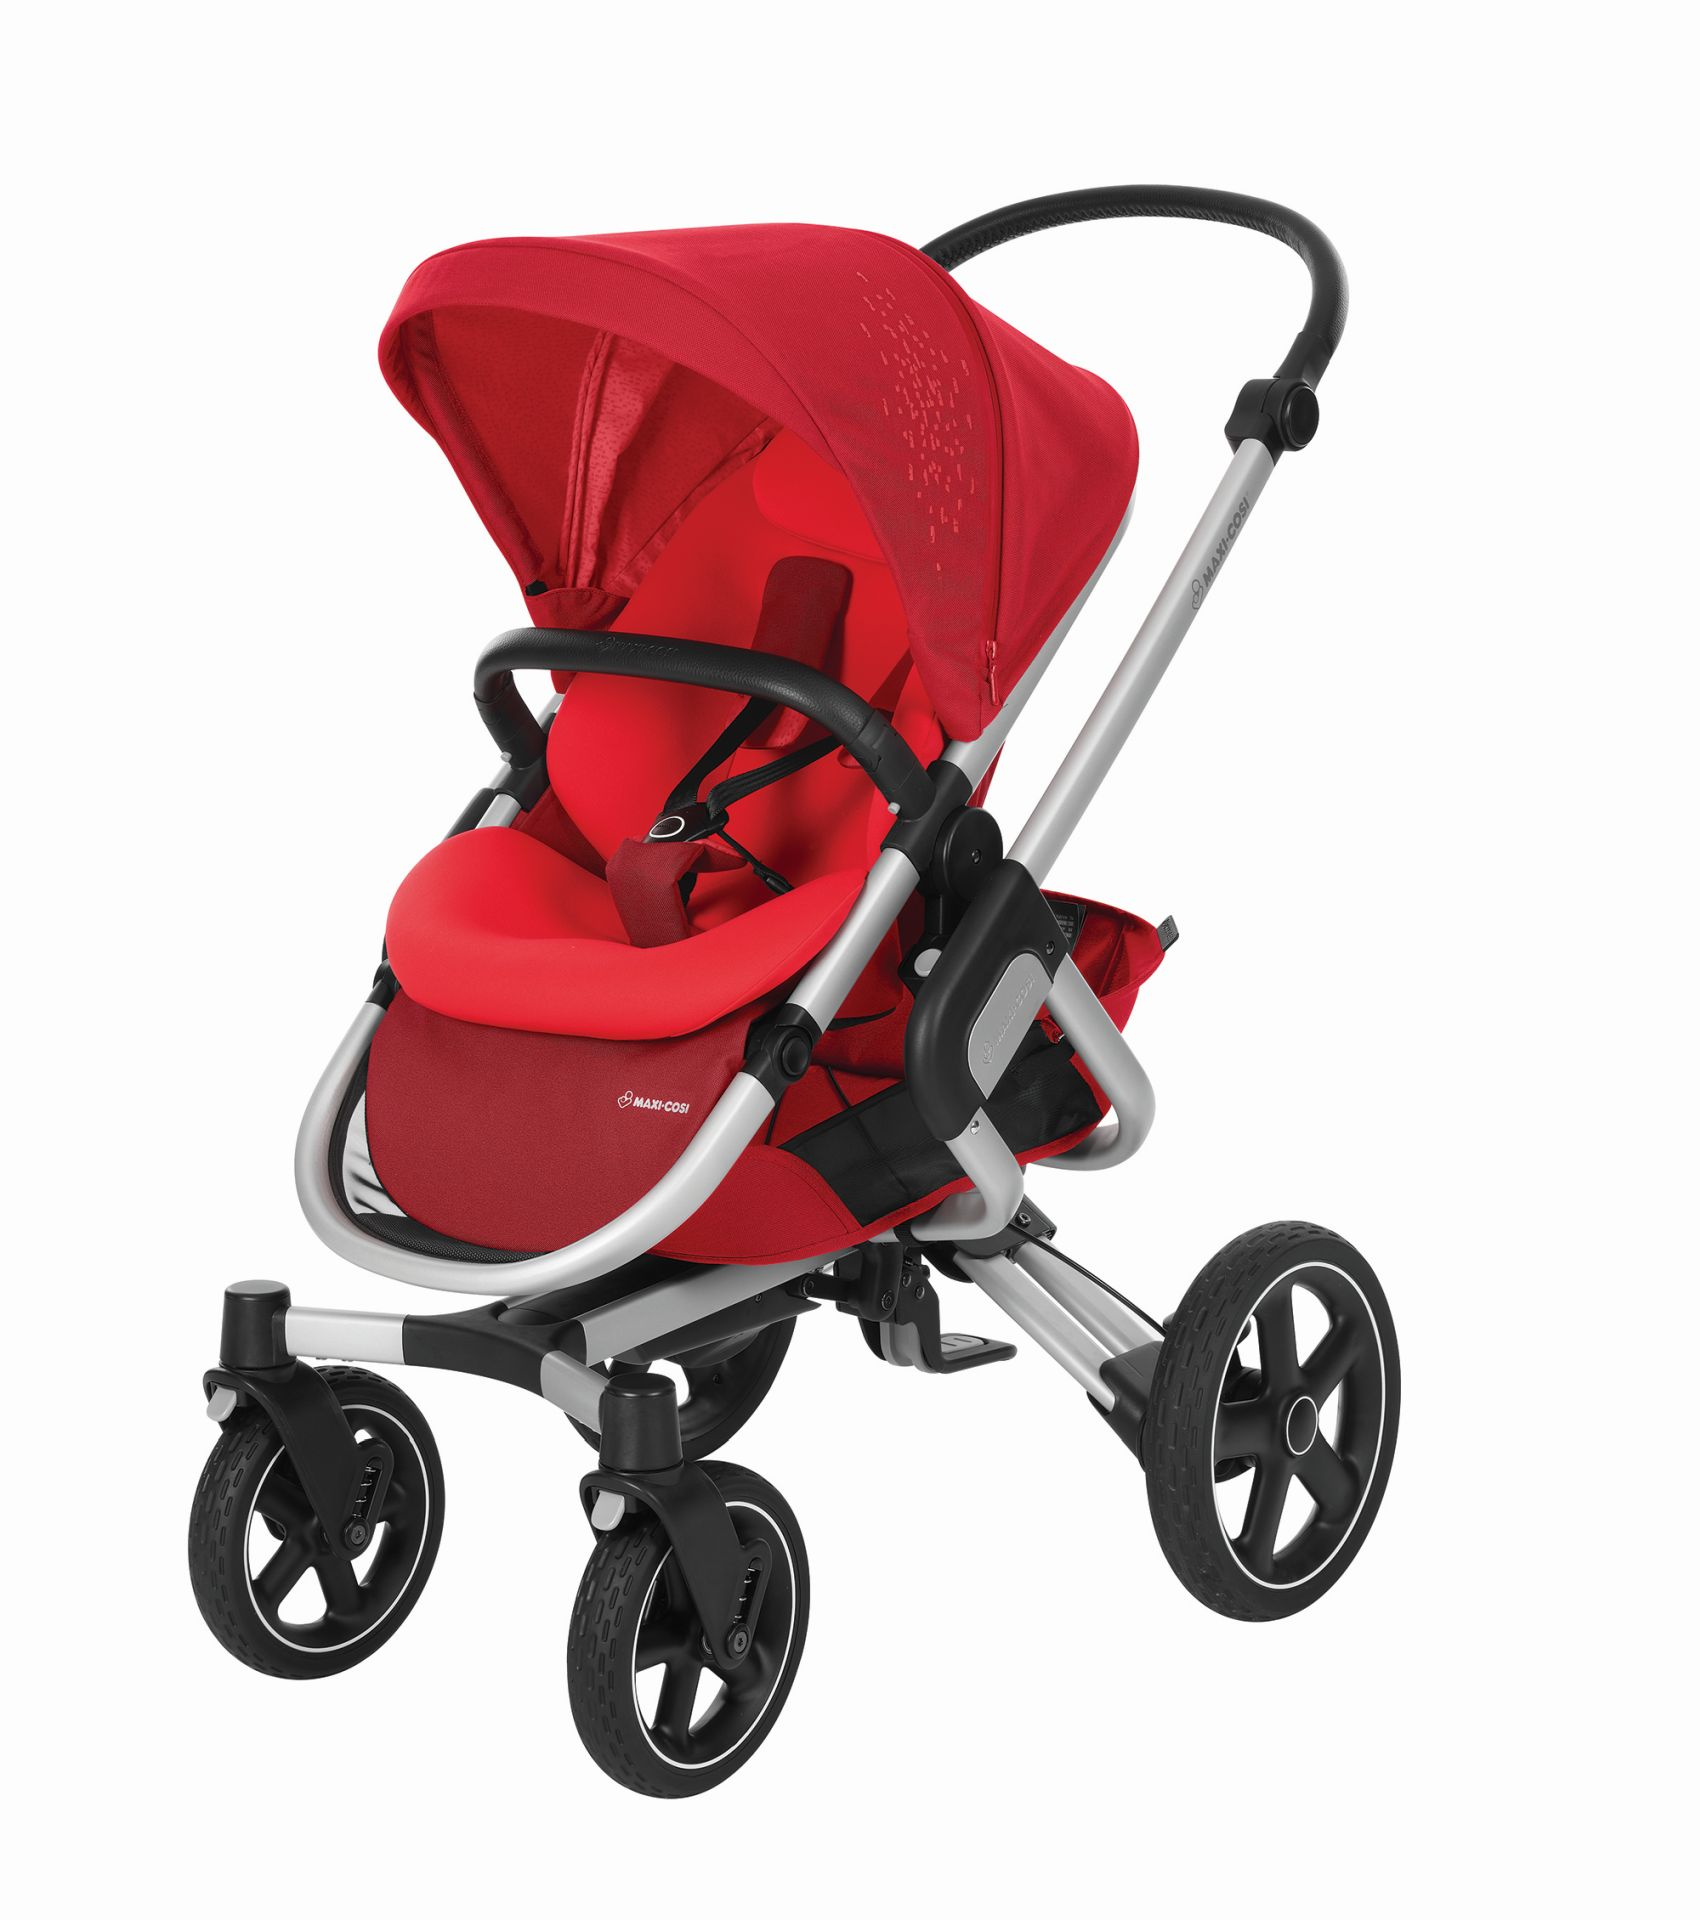 maxi cosi 4 wheels stroller nova 2018 vivid red buy at. Black Bedroom Furniture Sets. Home Design Ideas